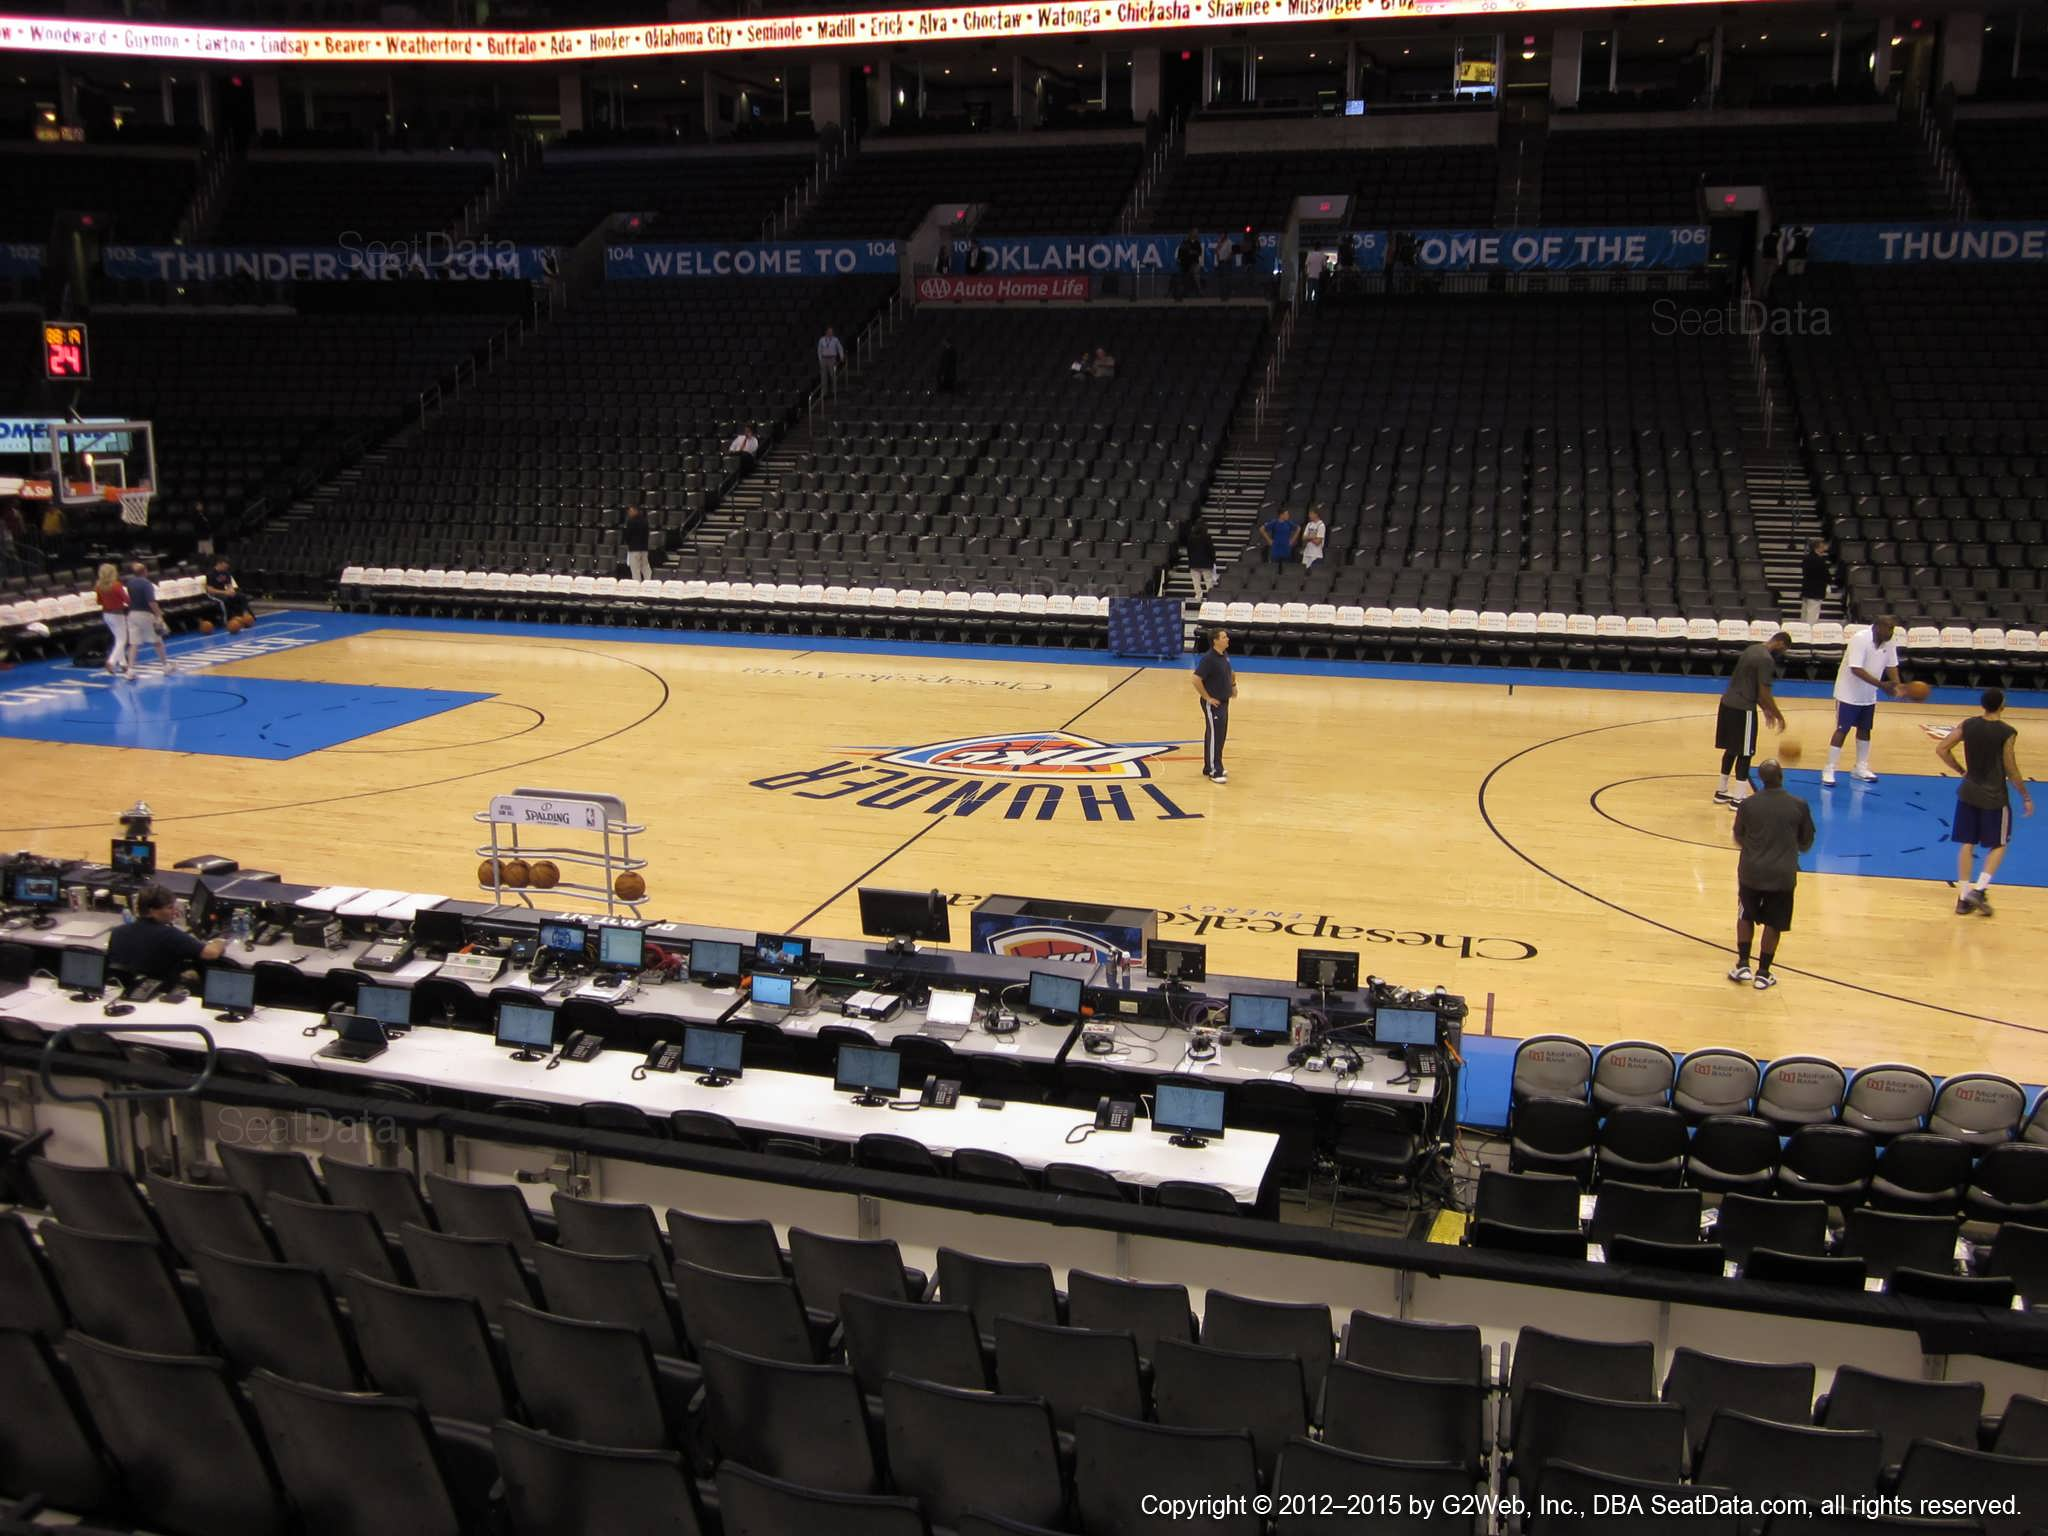 Seat view from section 115 at Chesapeake Energy Arena, home of the Oklahoma City Thunder